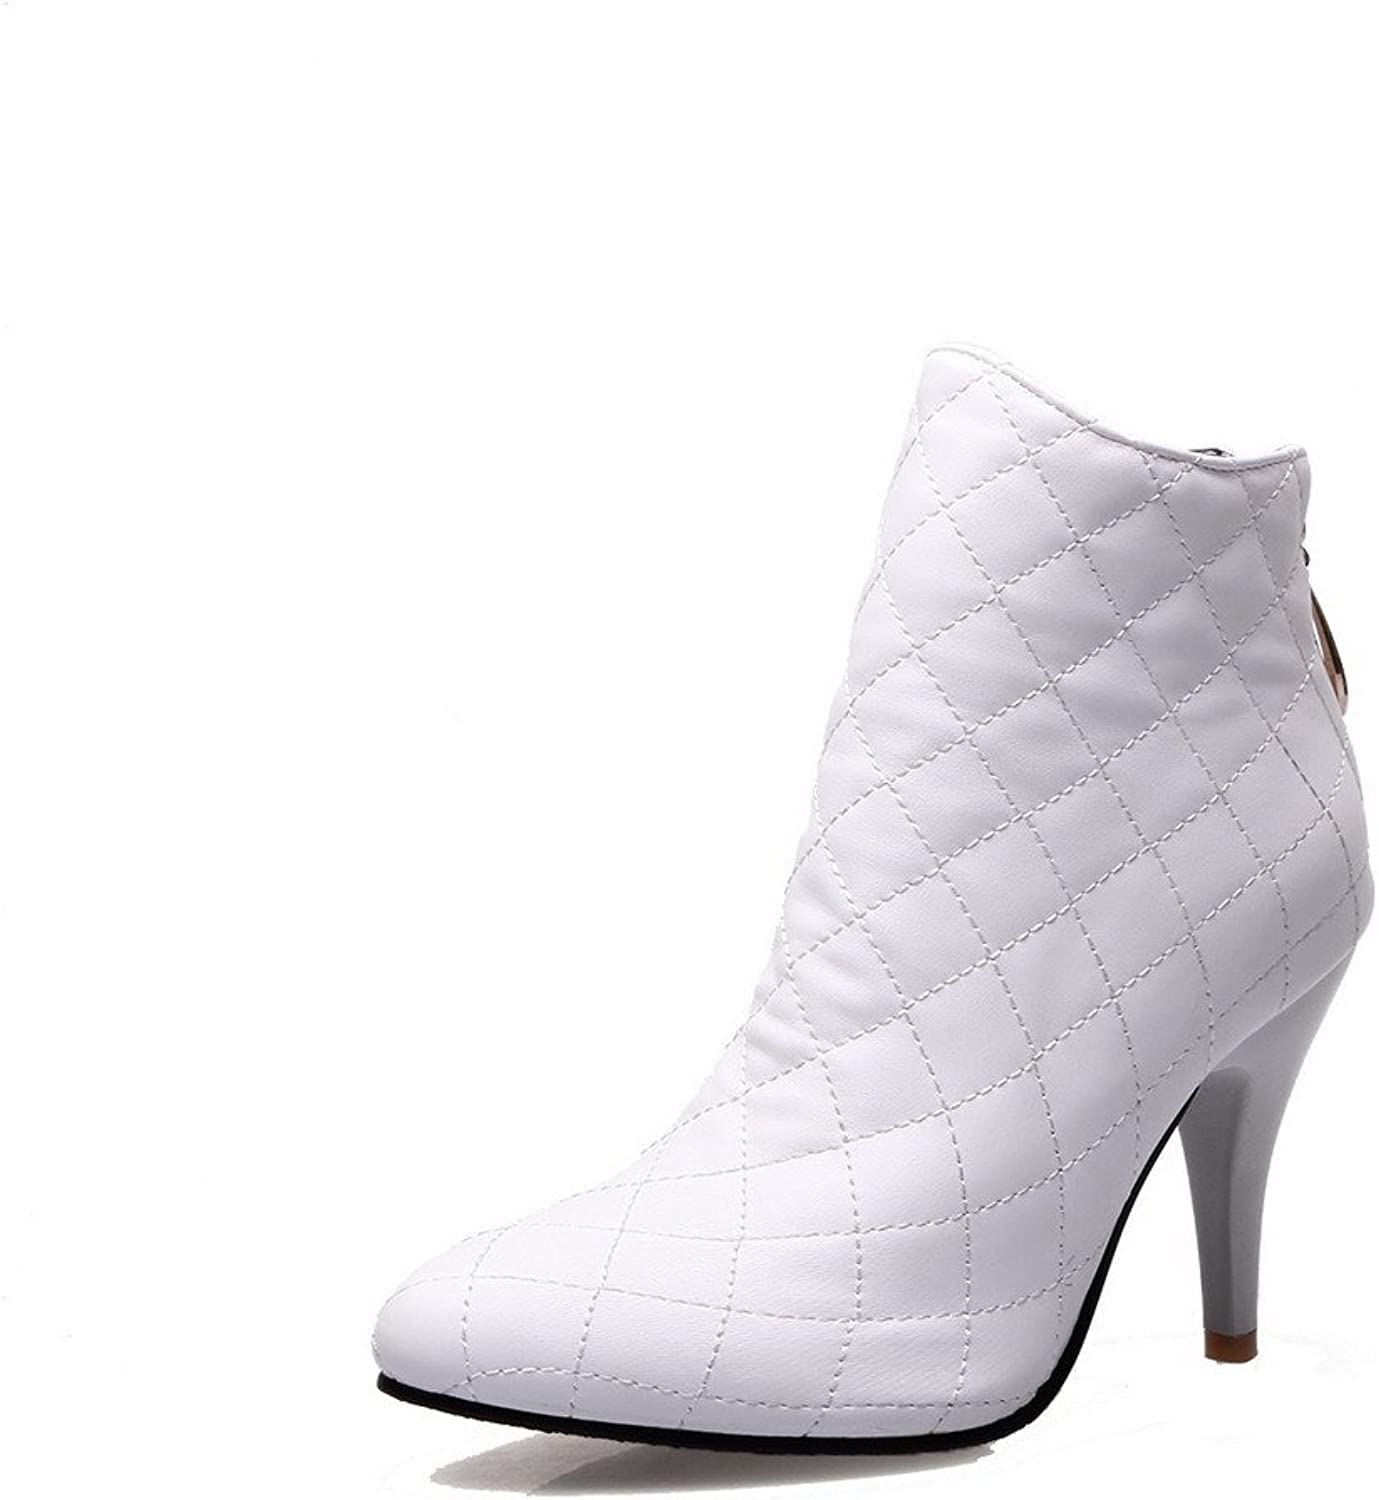 WeenFashion Women's Soft Material Zipper Pointed Closed Toe High-Heels Low-top Boots